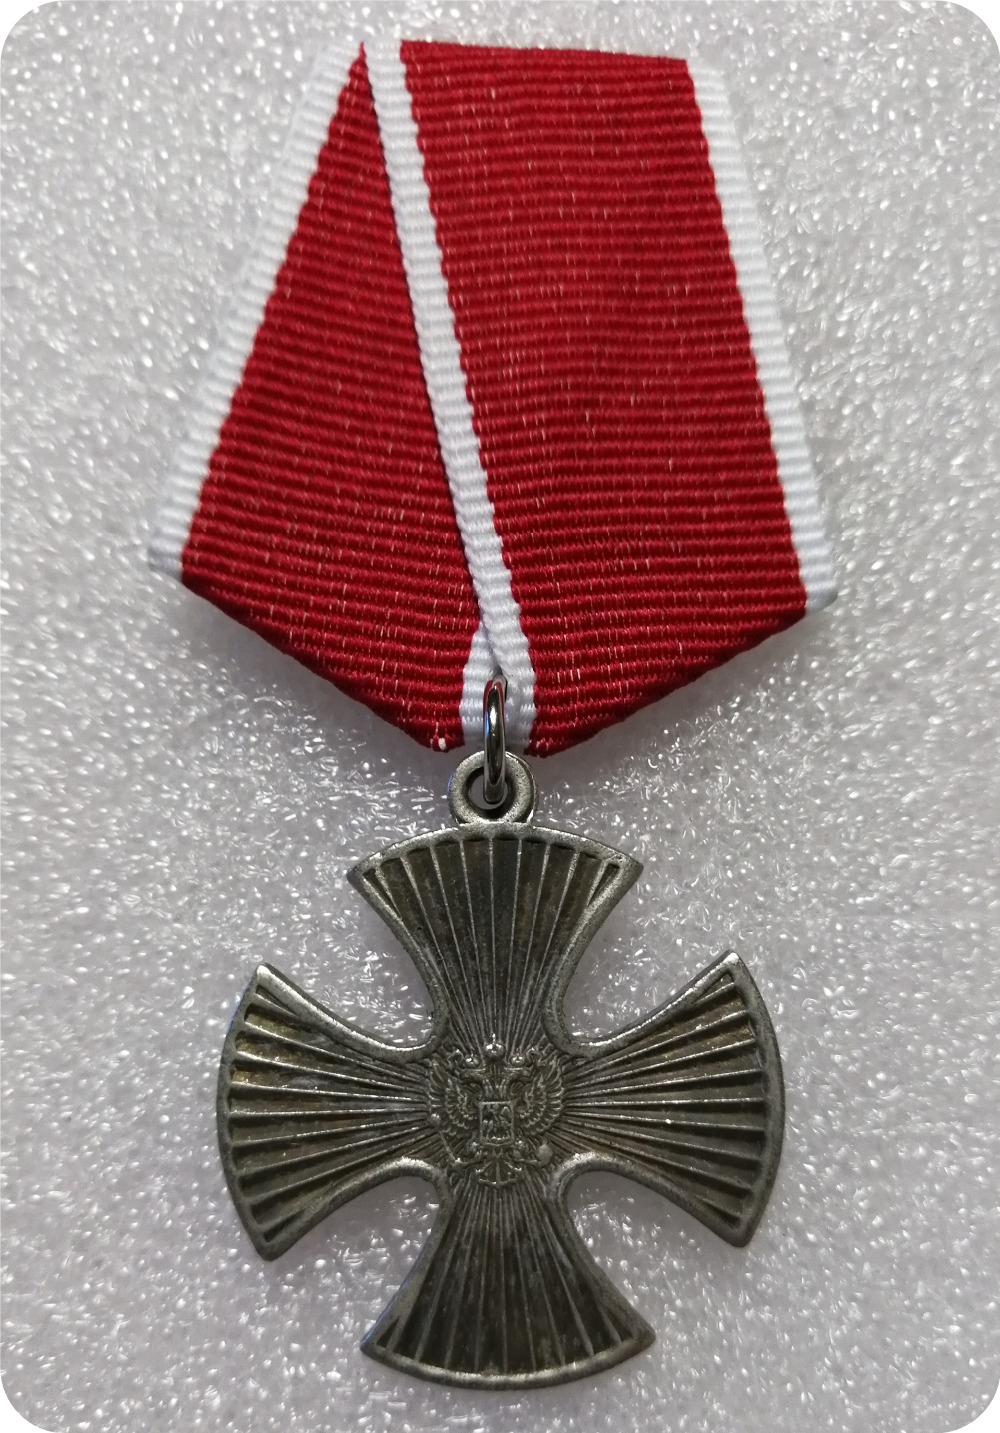 RUSSIAN FEDERATION RARE ORIGINAL ORDER OF COURAGE # 16.098 FOR FIRST CHECHEN WAR